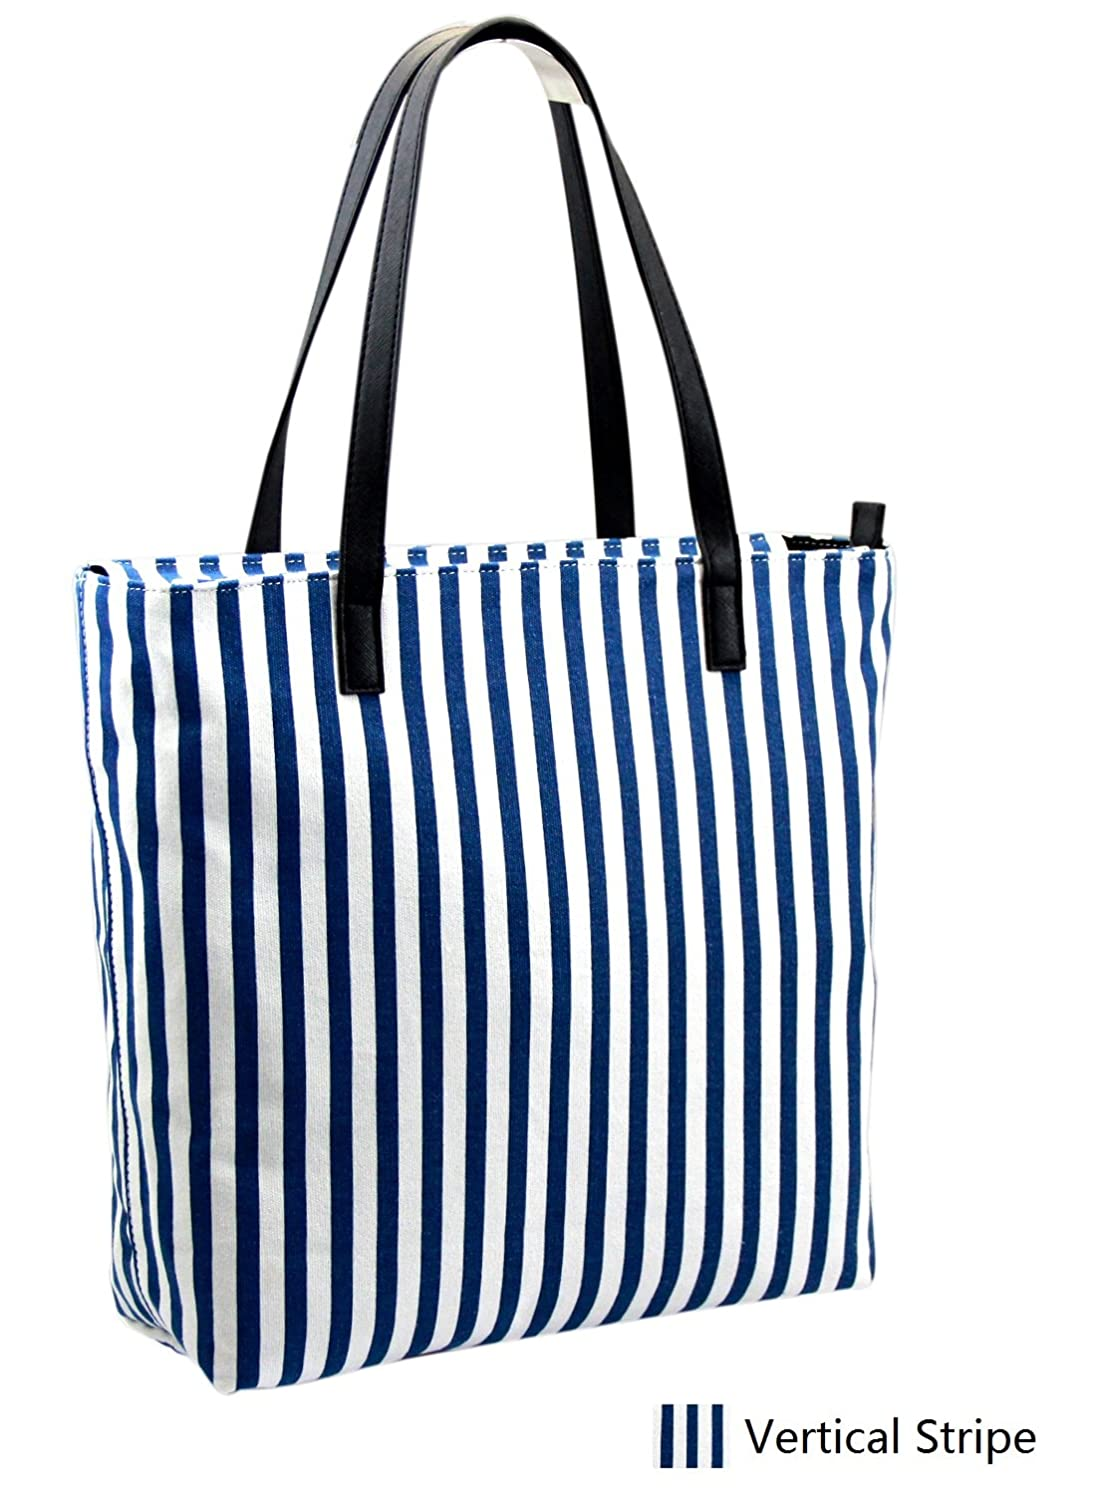 Hyco BLS01 Women Handbag Navy and White Stripped Canvas Practical Shoulder Bag